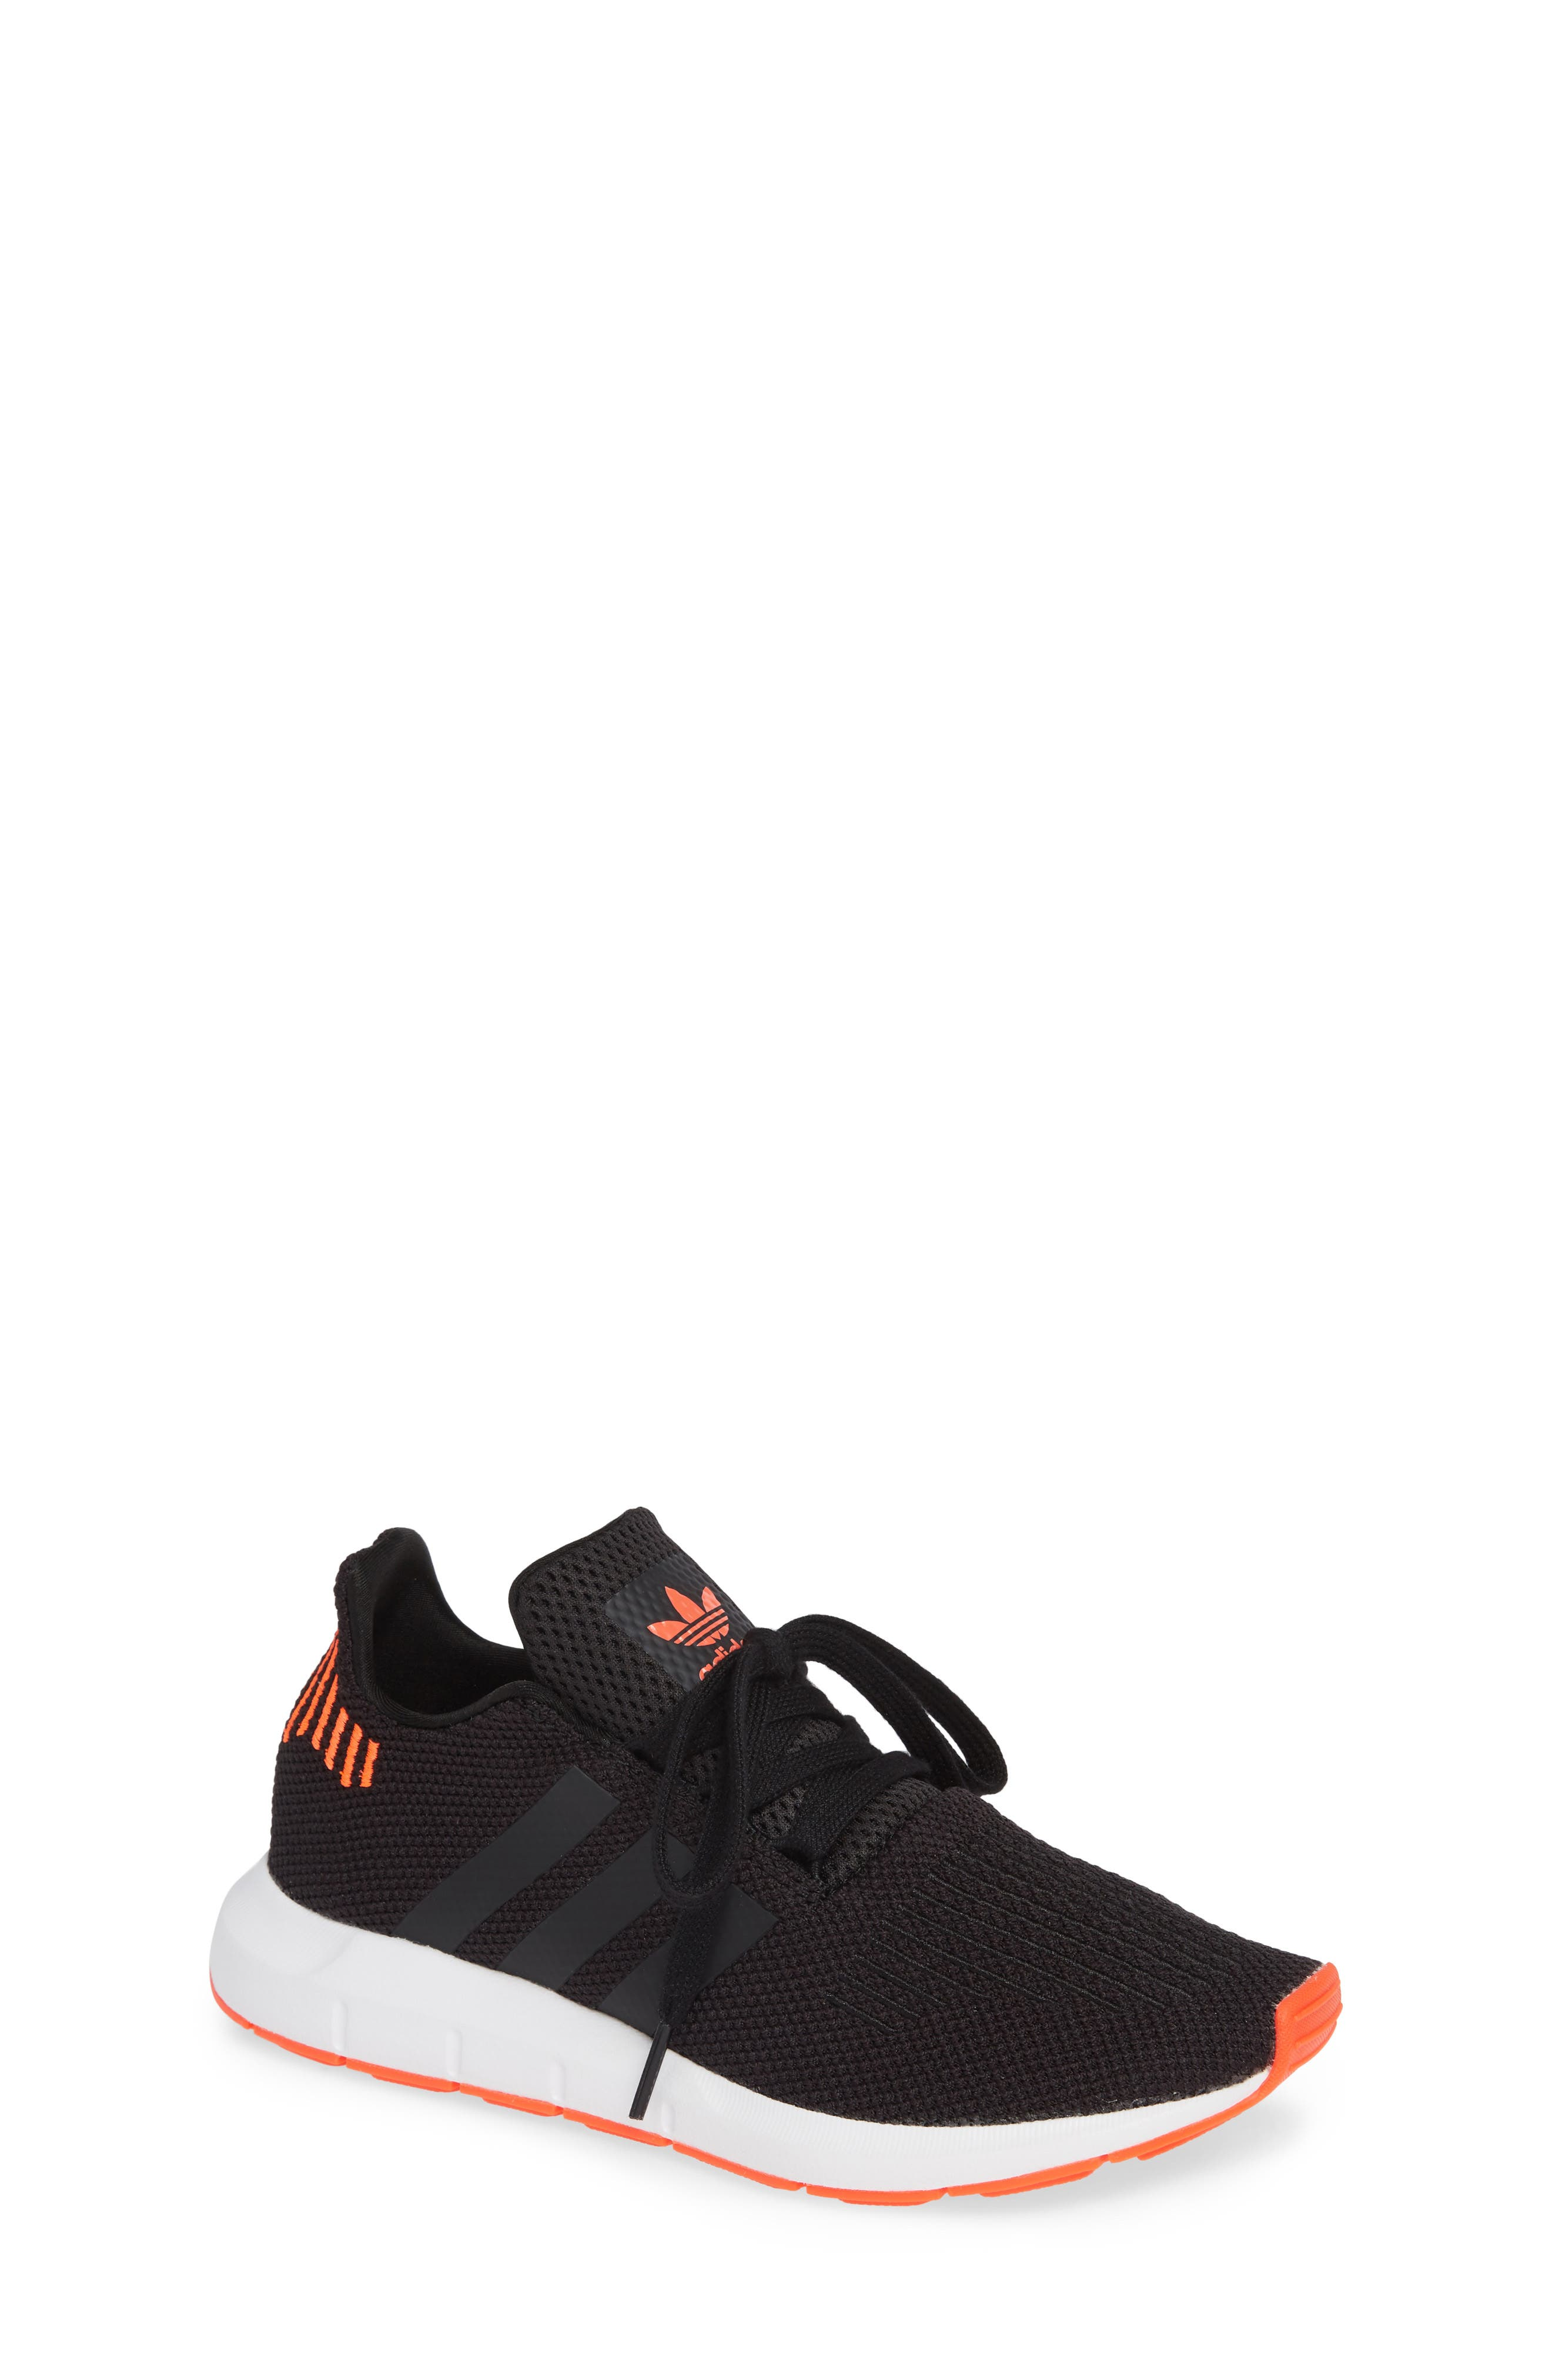 Toddler Adidas Swift Run J Sneaker Size 1 M  Black